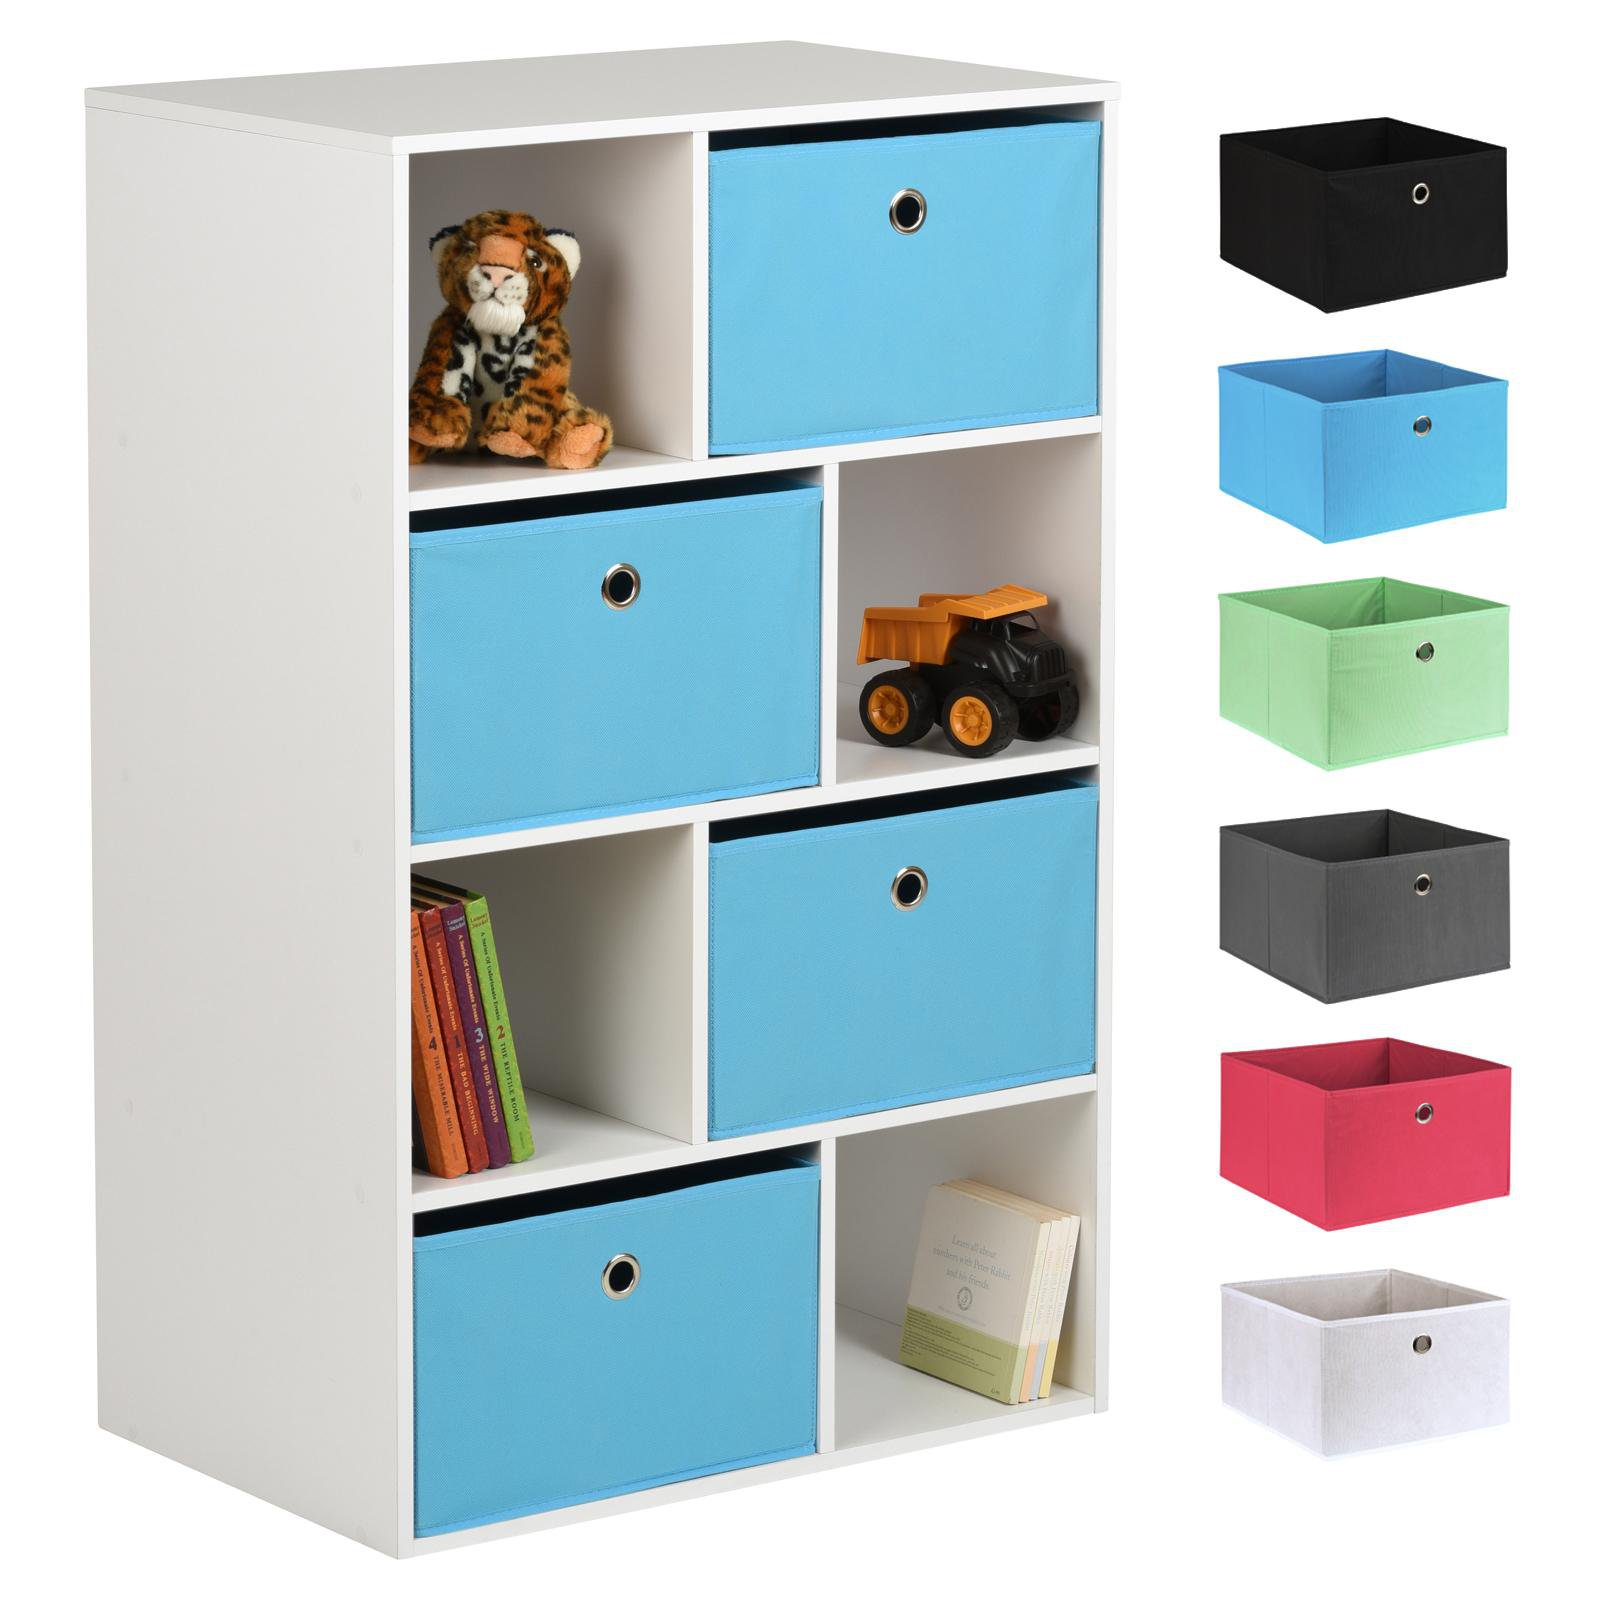 image-Hartleys White 8 Cube Kids Storage Unit & 4 Easy Grasp Box Drawers - Blue